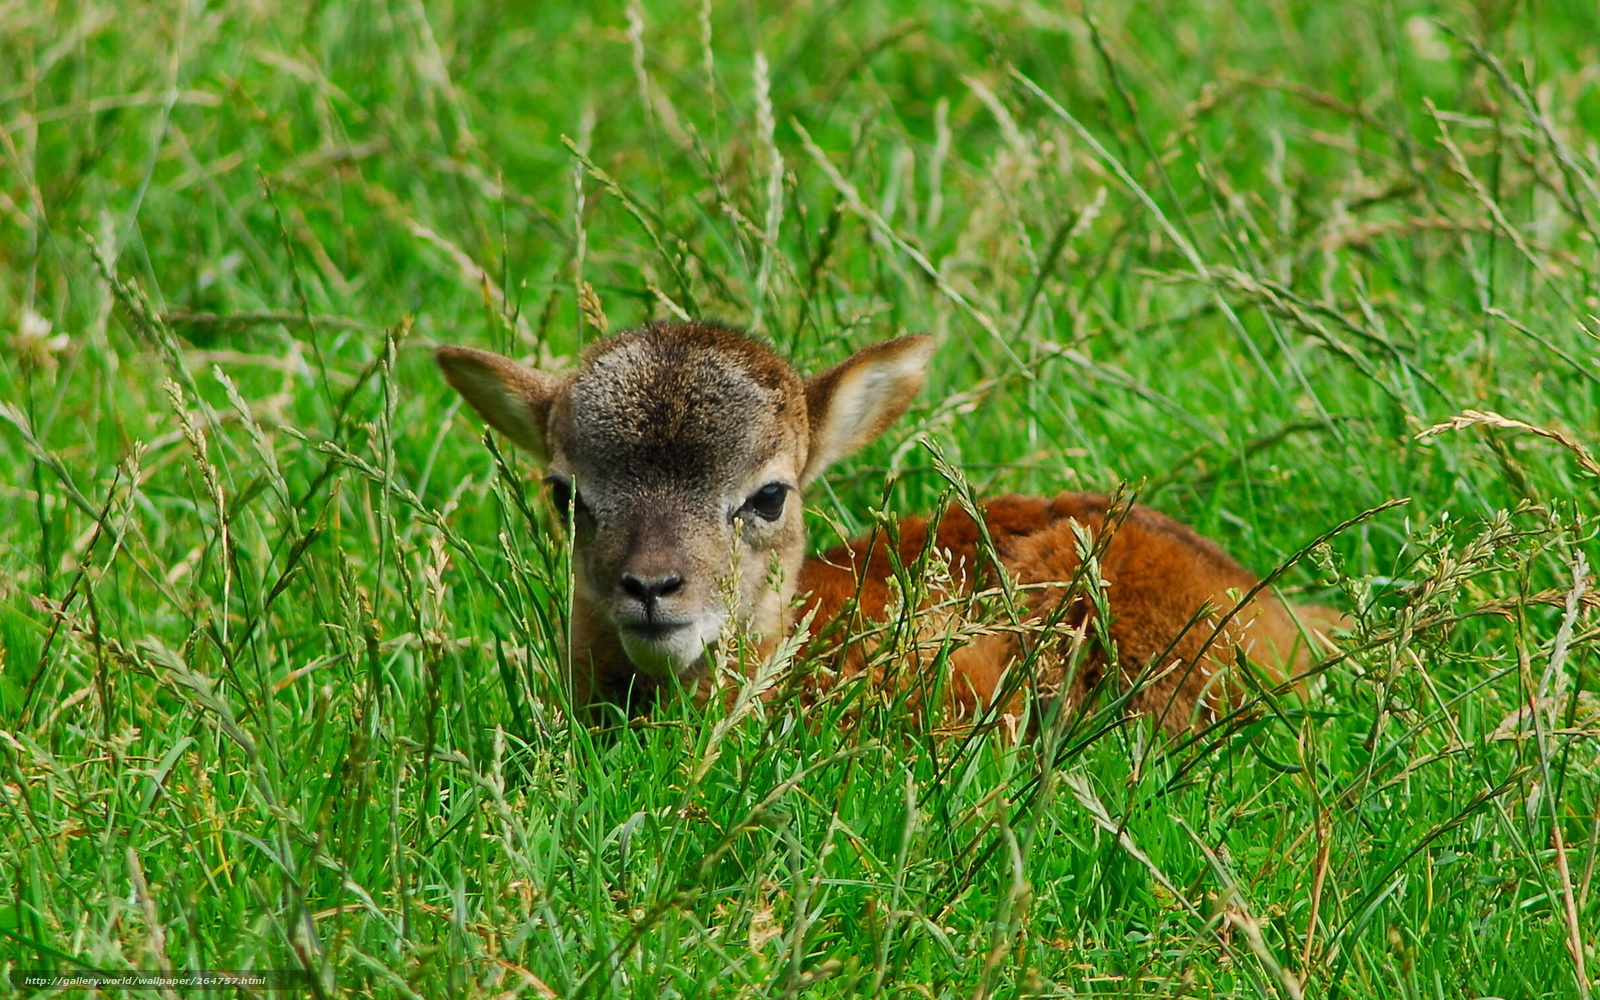 Download Wallpapers Download 2790x2547 Animals Grass: Download Wallpaper Summer, Grass, Animals Free Desktop